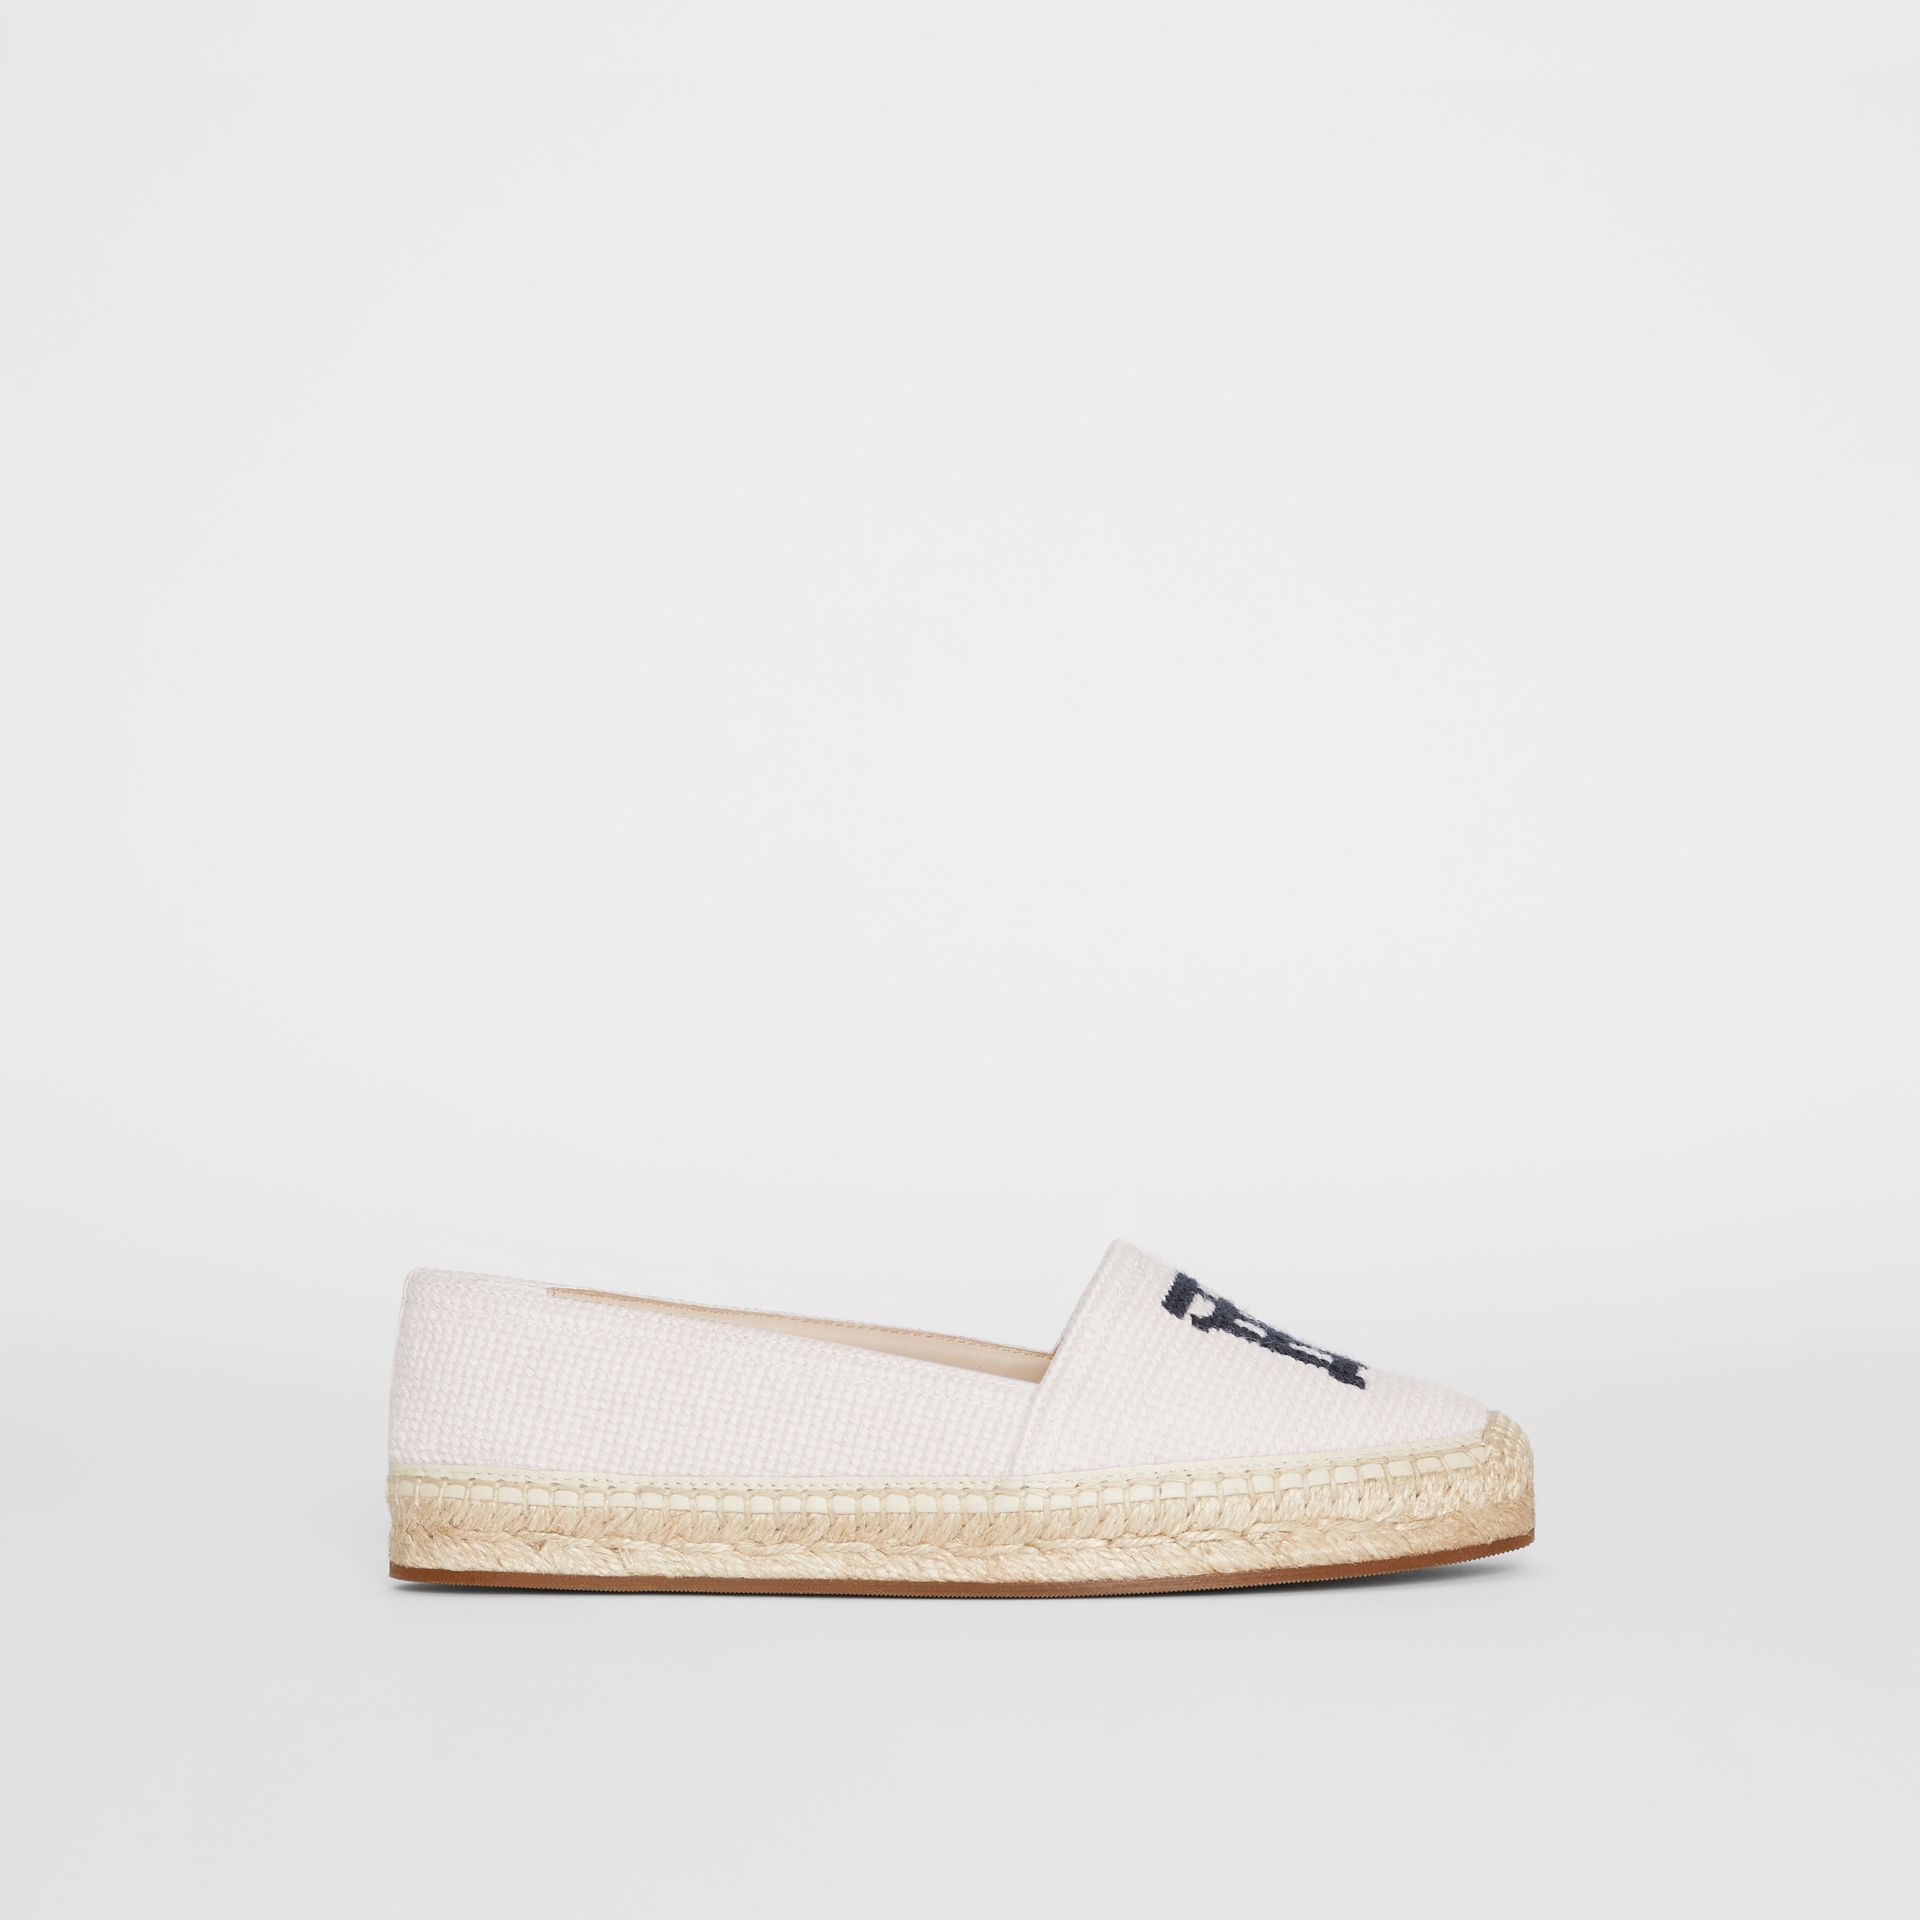 Monogram Motif Cotton and Leather Espadrilles in Ecru/black | Burberry Singapore - gallery image 4